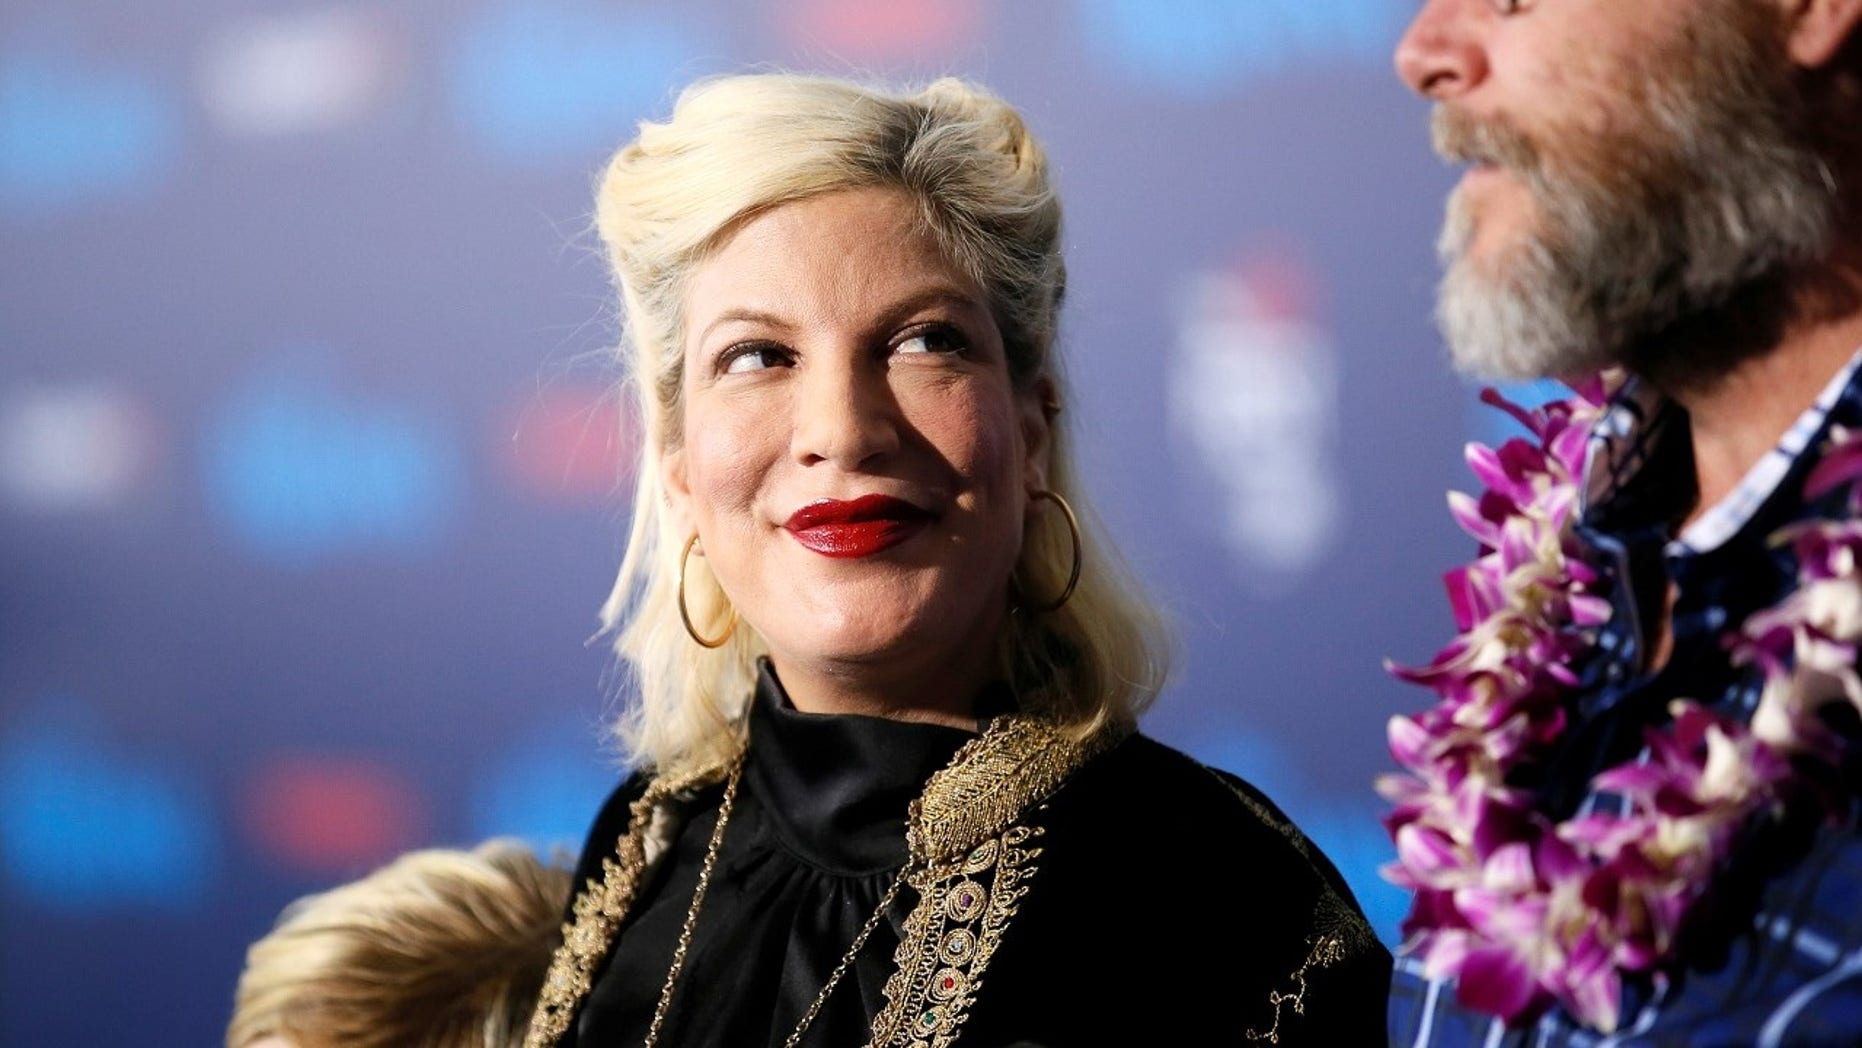 Tori Spelling went back to work over the weekend following family turmoil that began earlier this month.